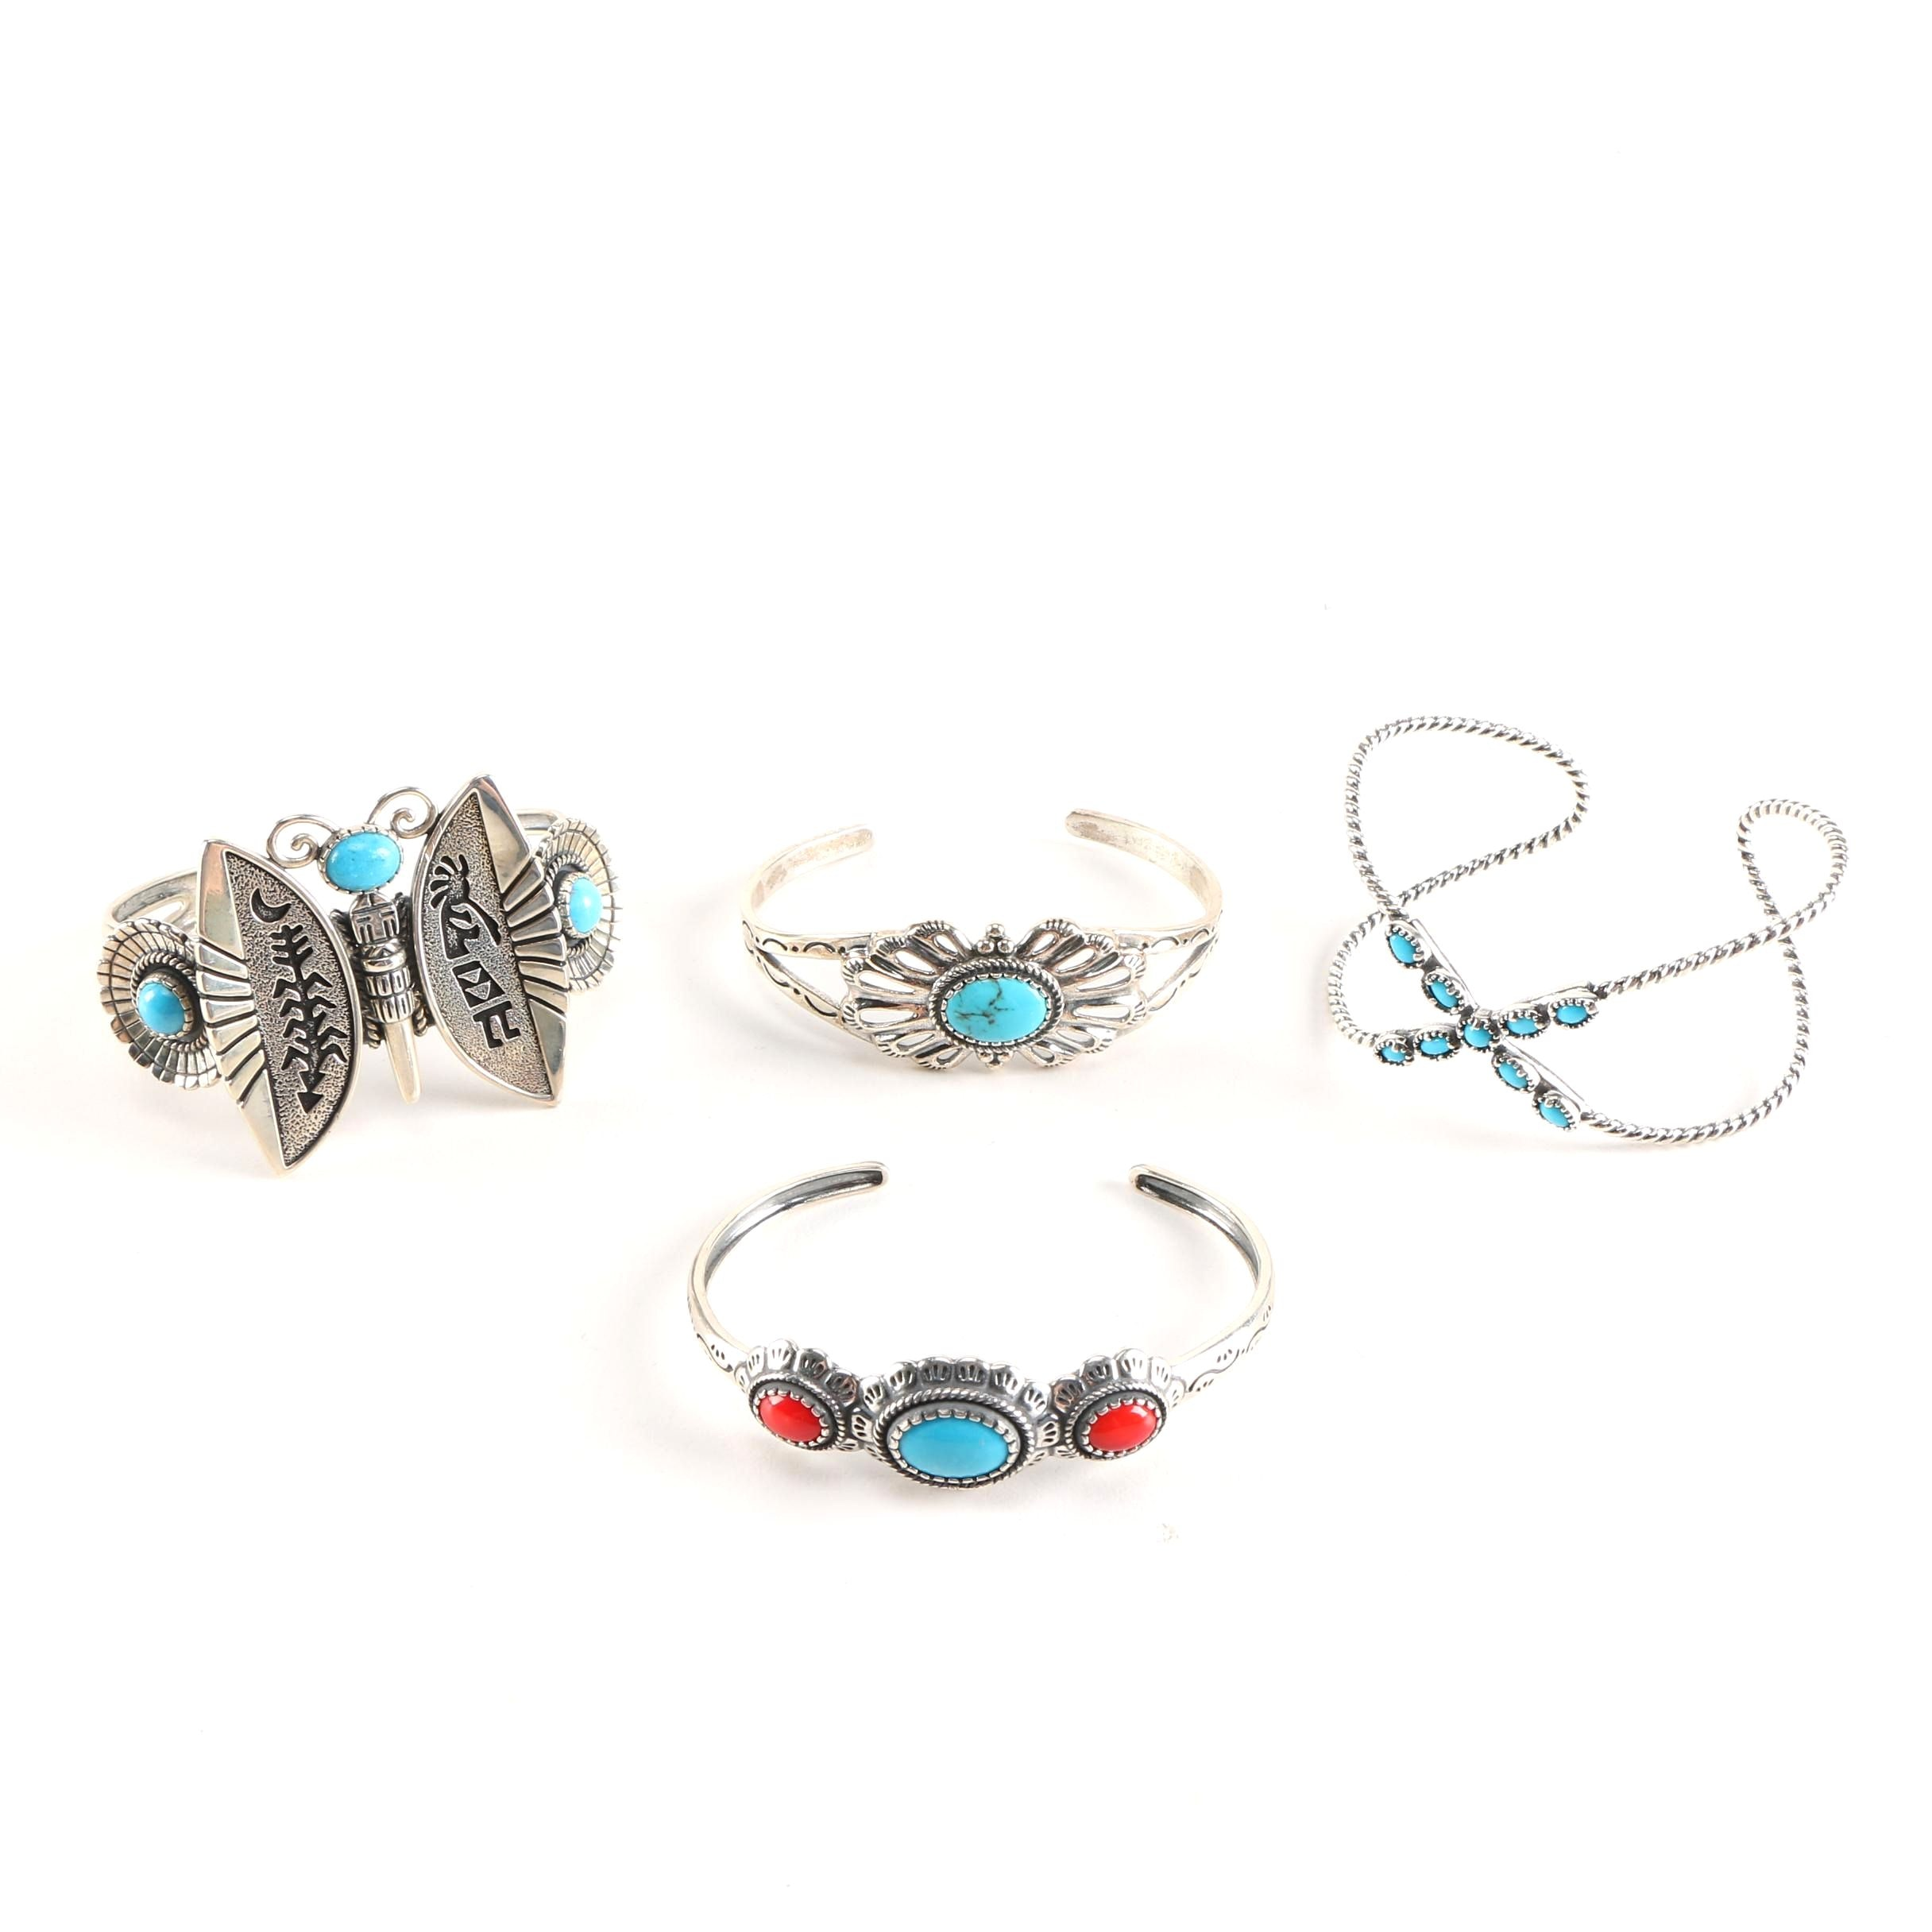 Carolyn Pollack Sterling Silver Bracelets with Gemstone Accents